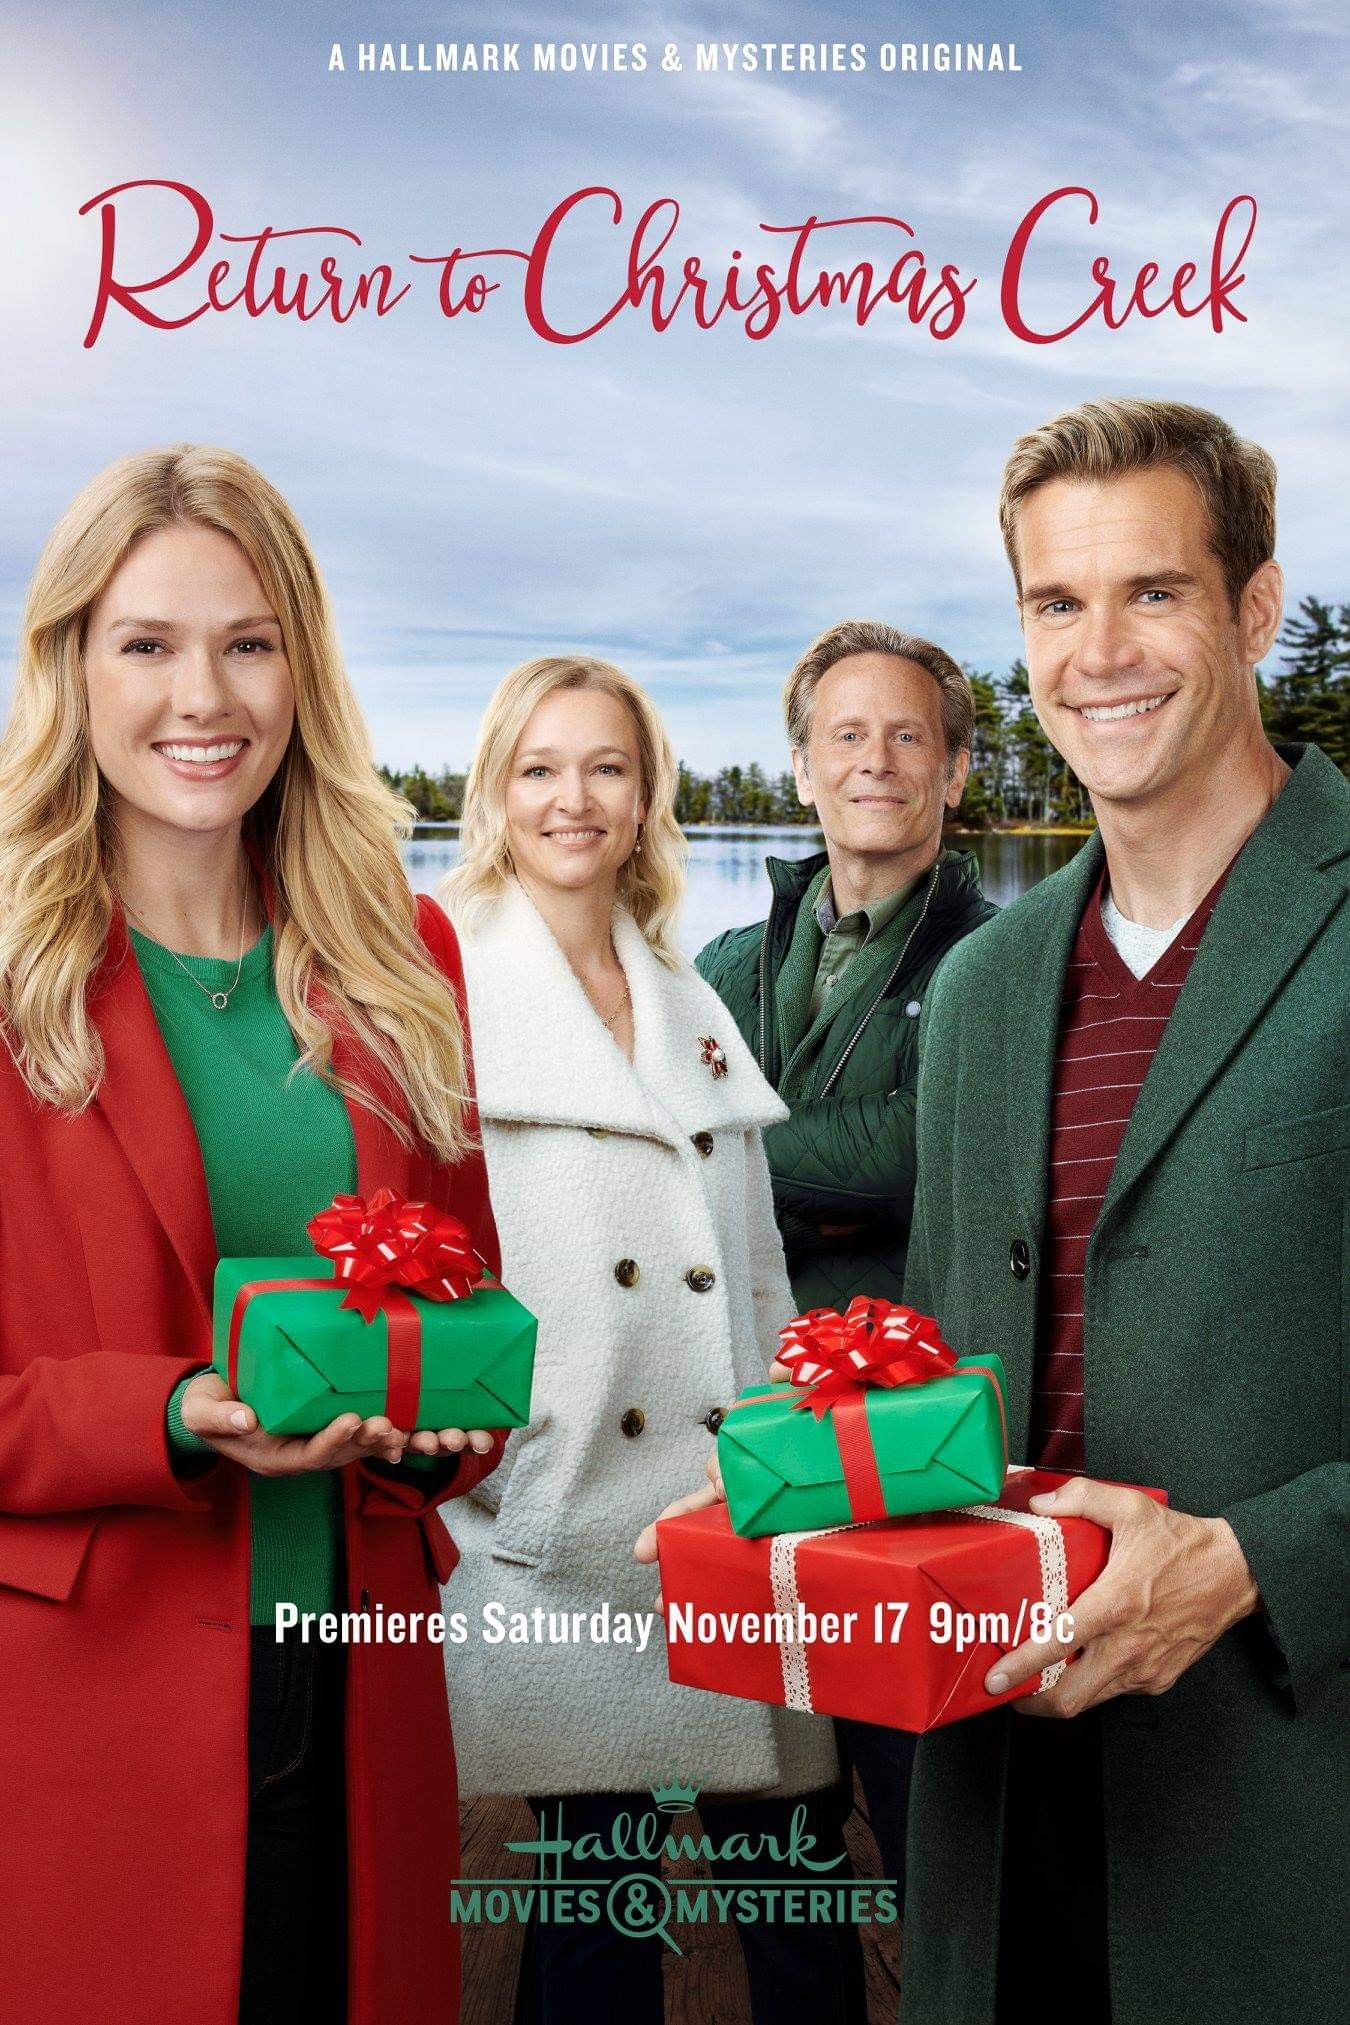 Pin by Lorie Ortiz on Great Hallmark Movies Hallmark